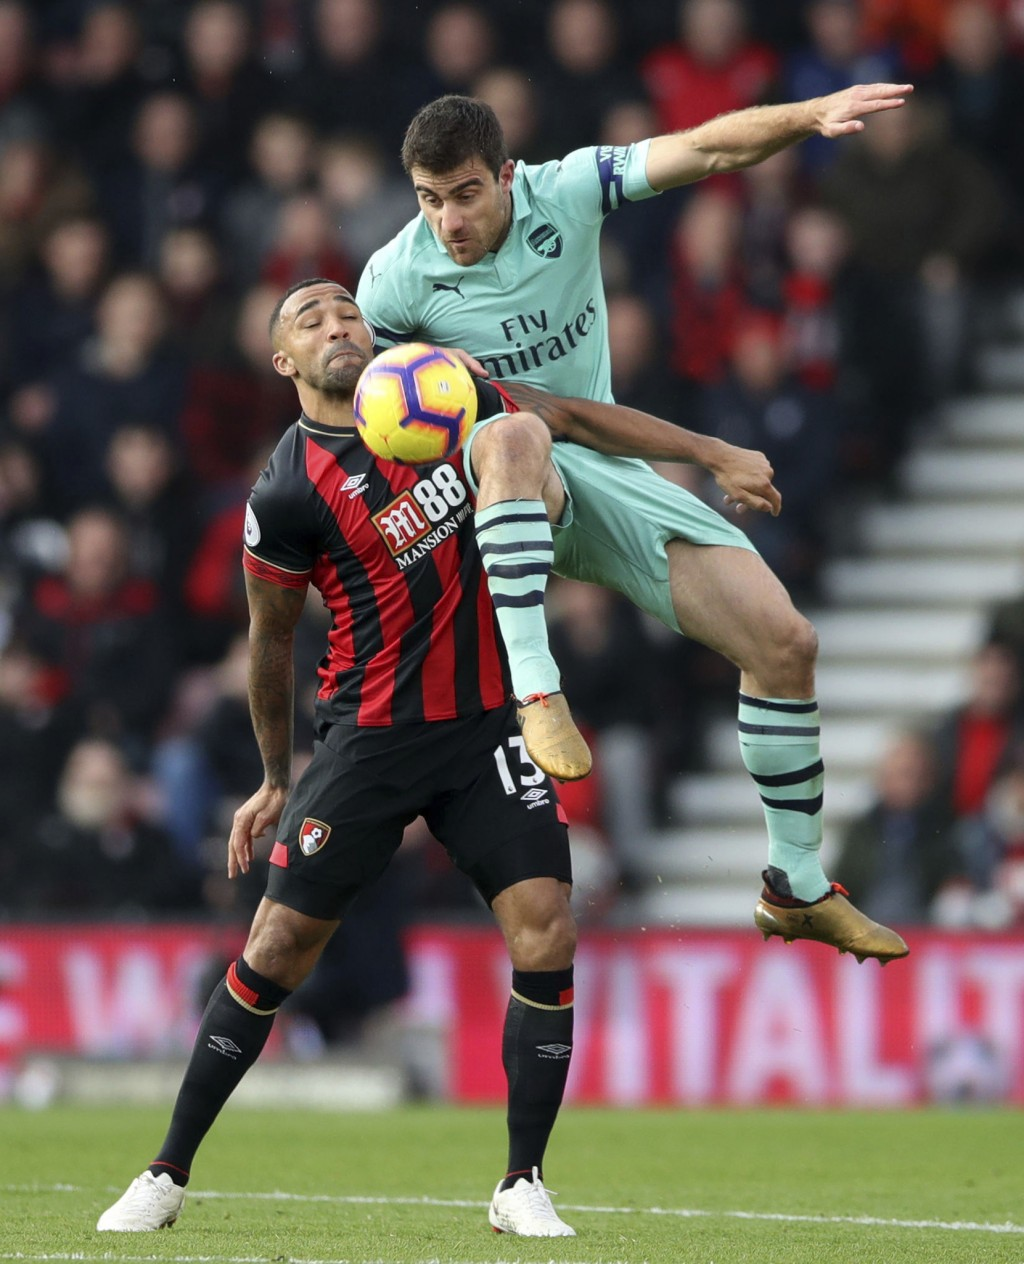 Arsenal's Sokratis Papastathopoulos, top, and Bournemouth's Callum Wilson in action during their English Premier League soccer match at The Vitality S...